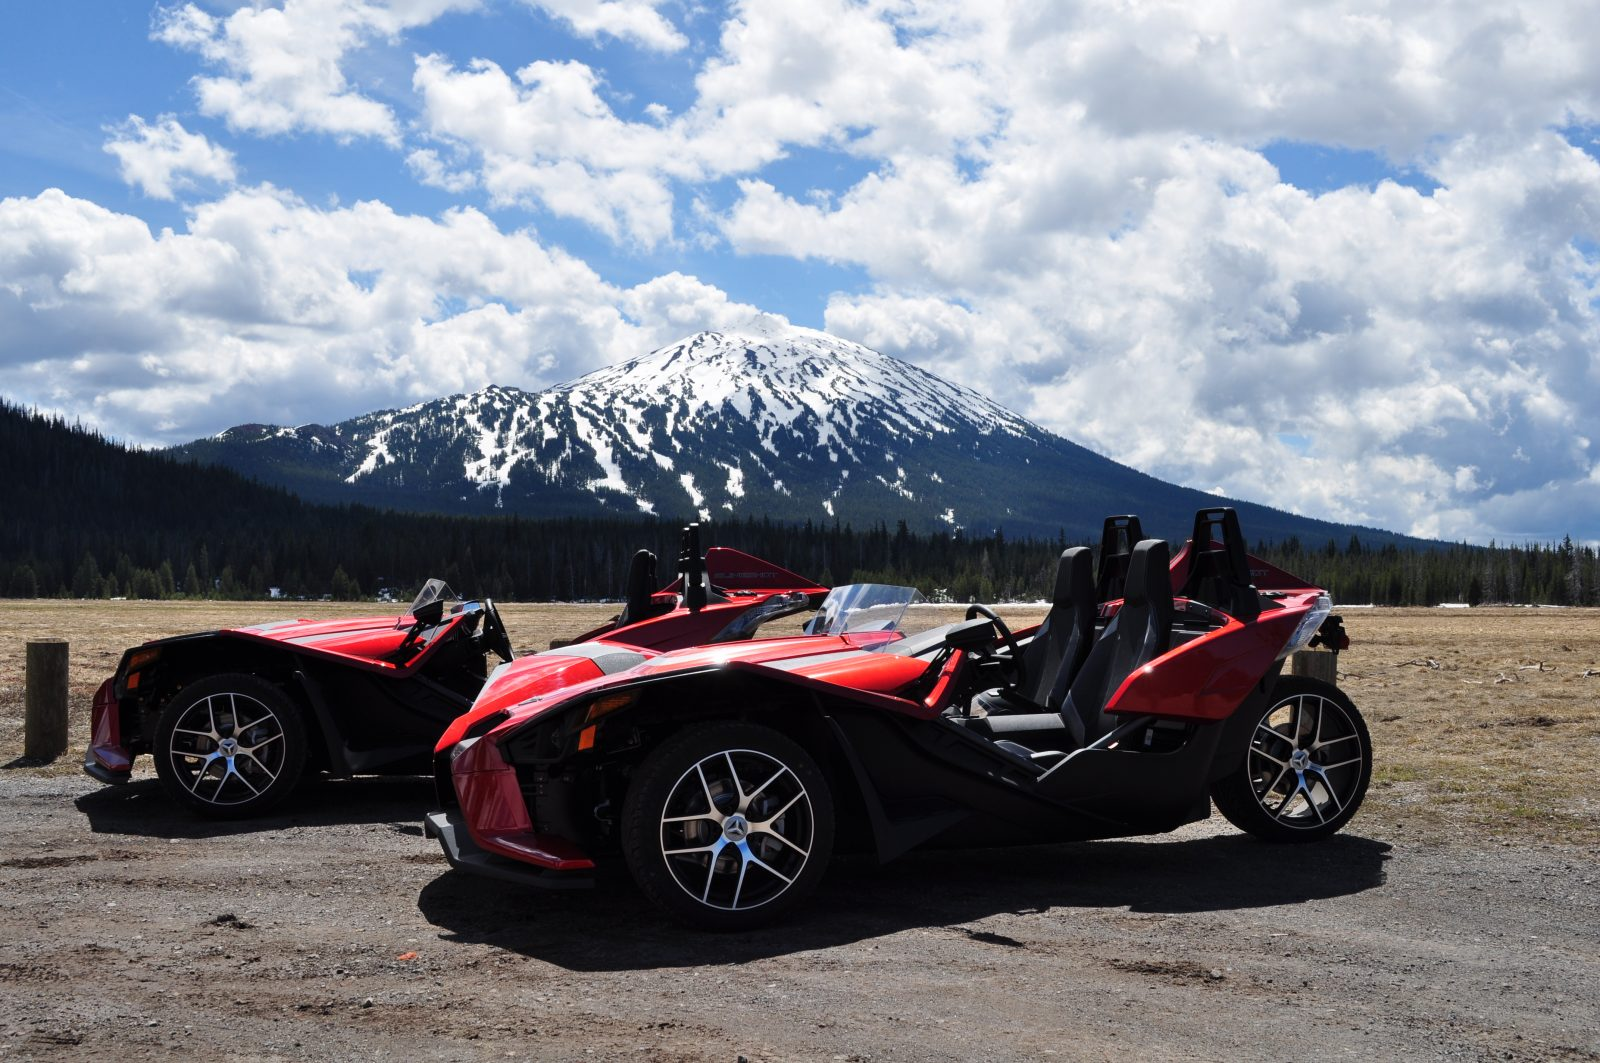 Polaris Slingshot at Mt Bachelor